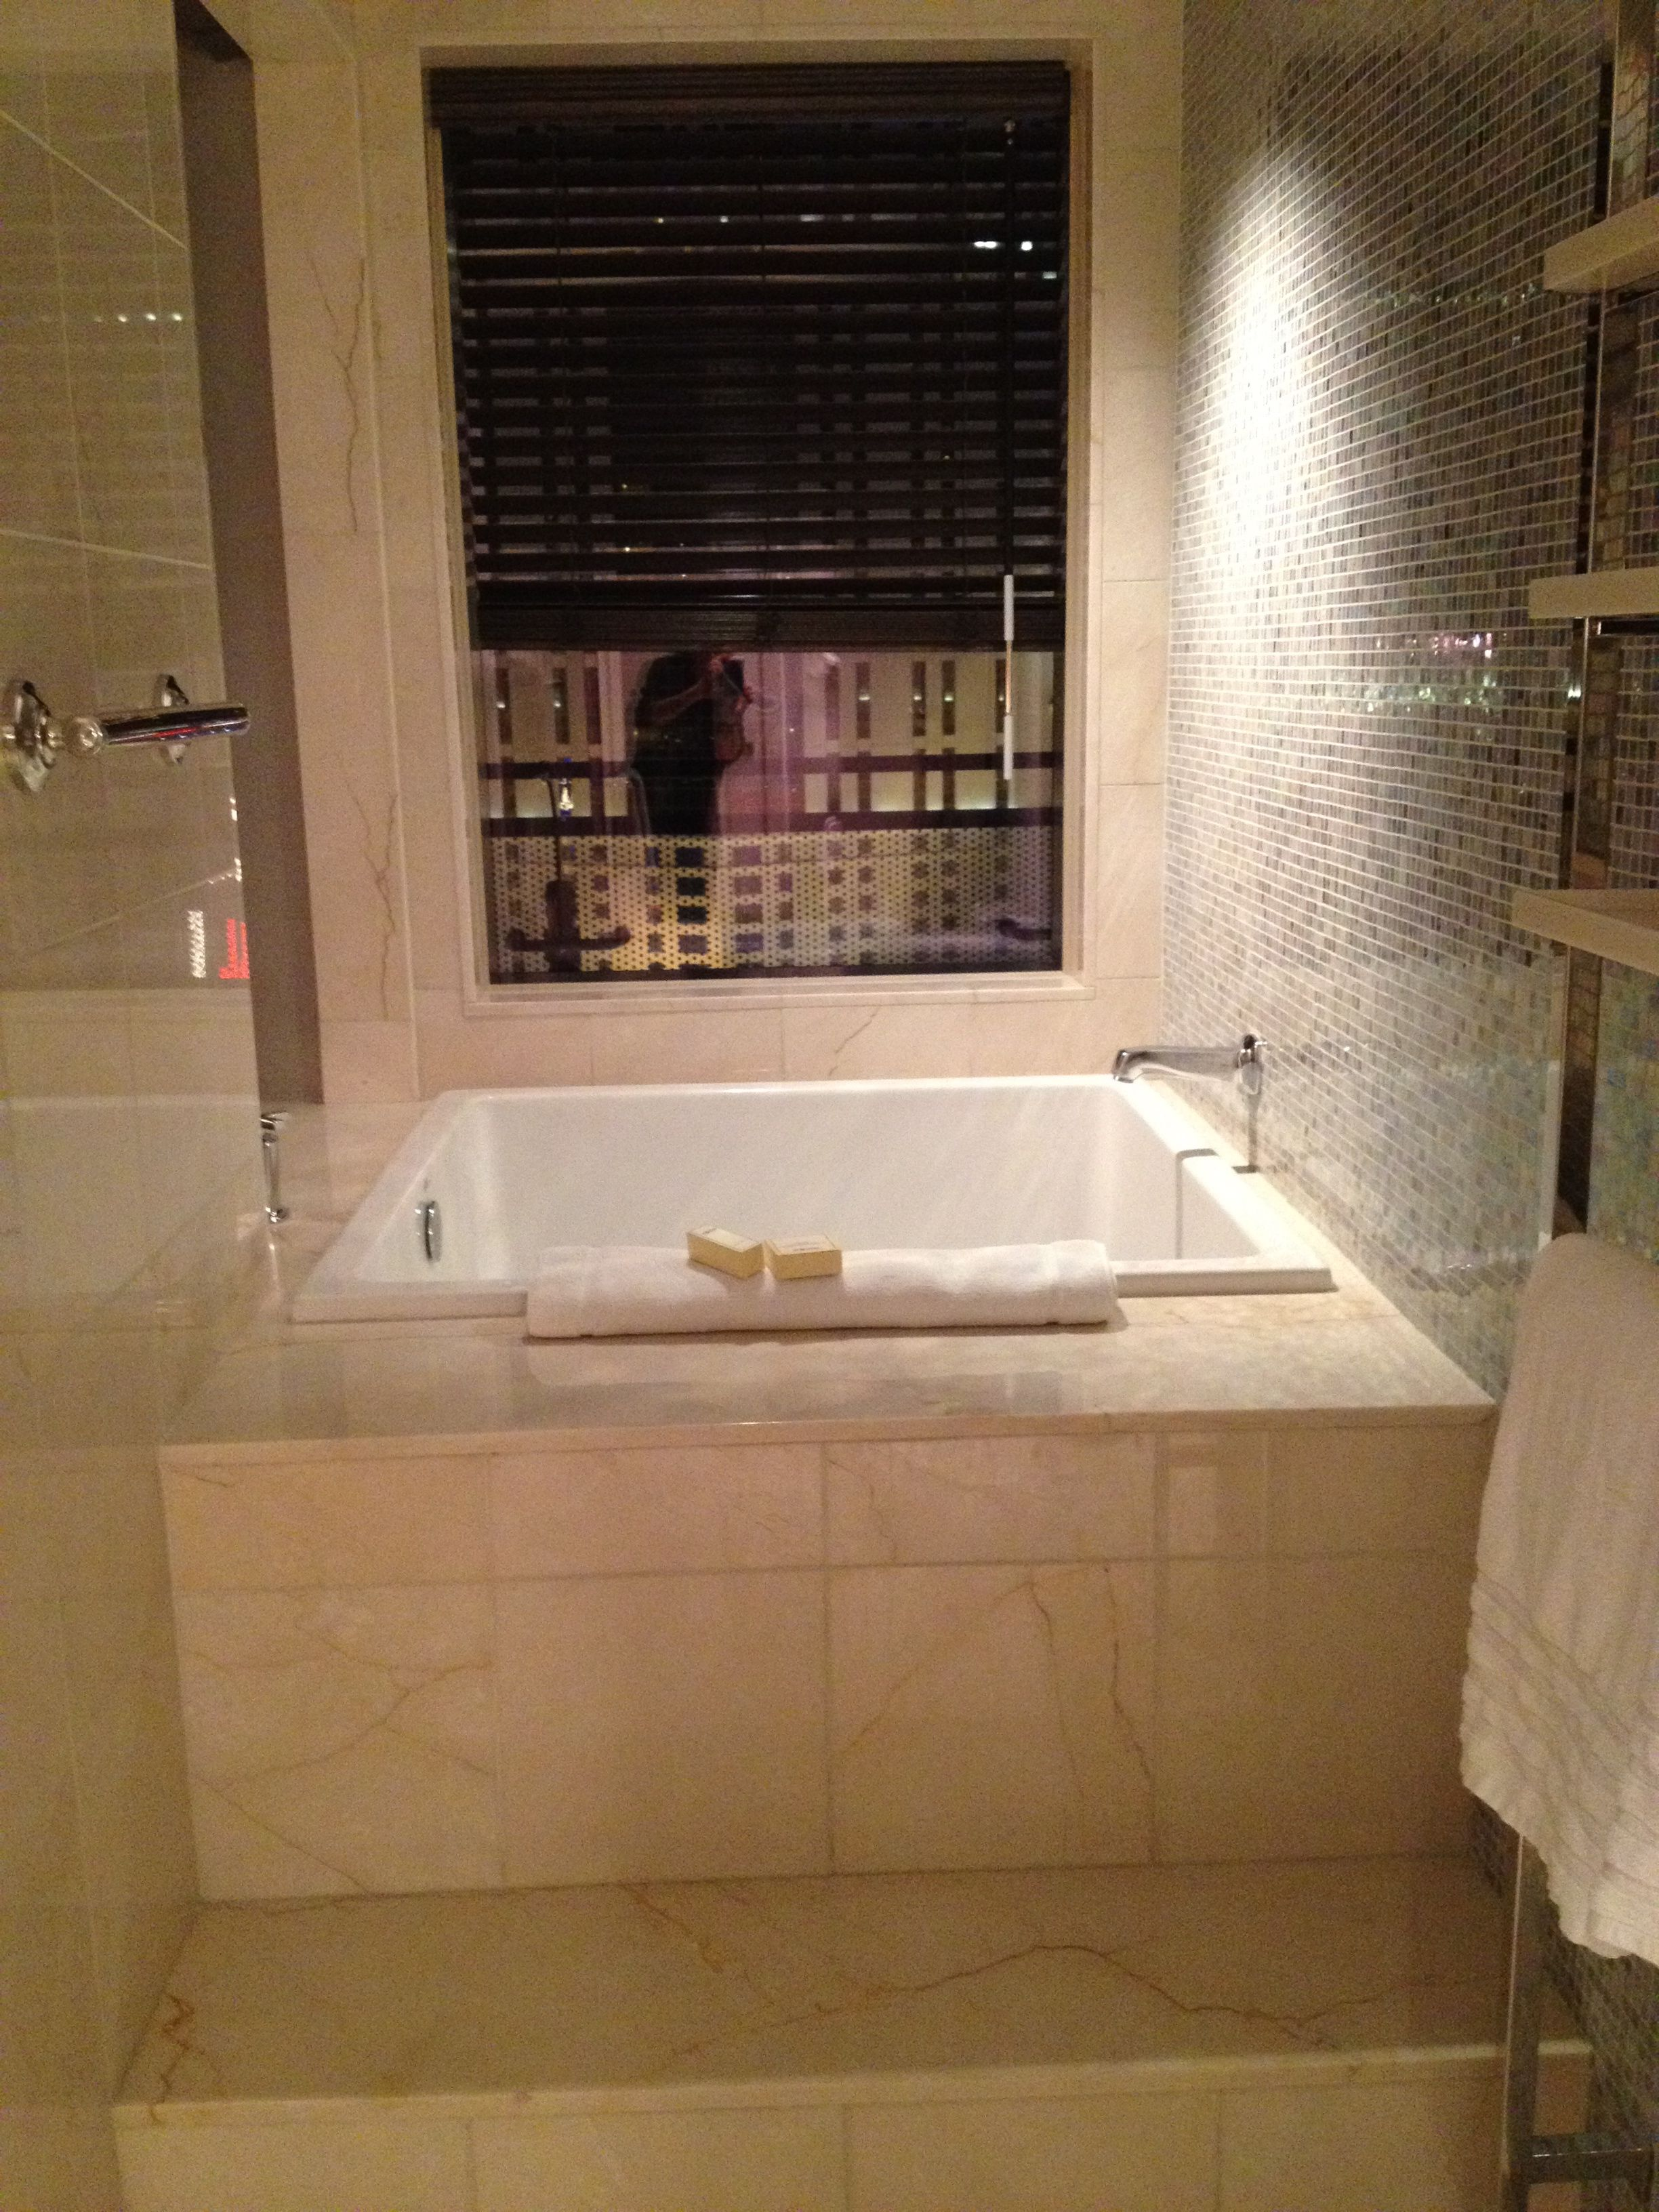 vegas innovative together las for bathroom design with remodeling ideas magnificent intended amusing inspiring within on modern remodel